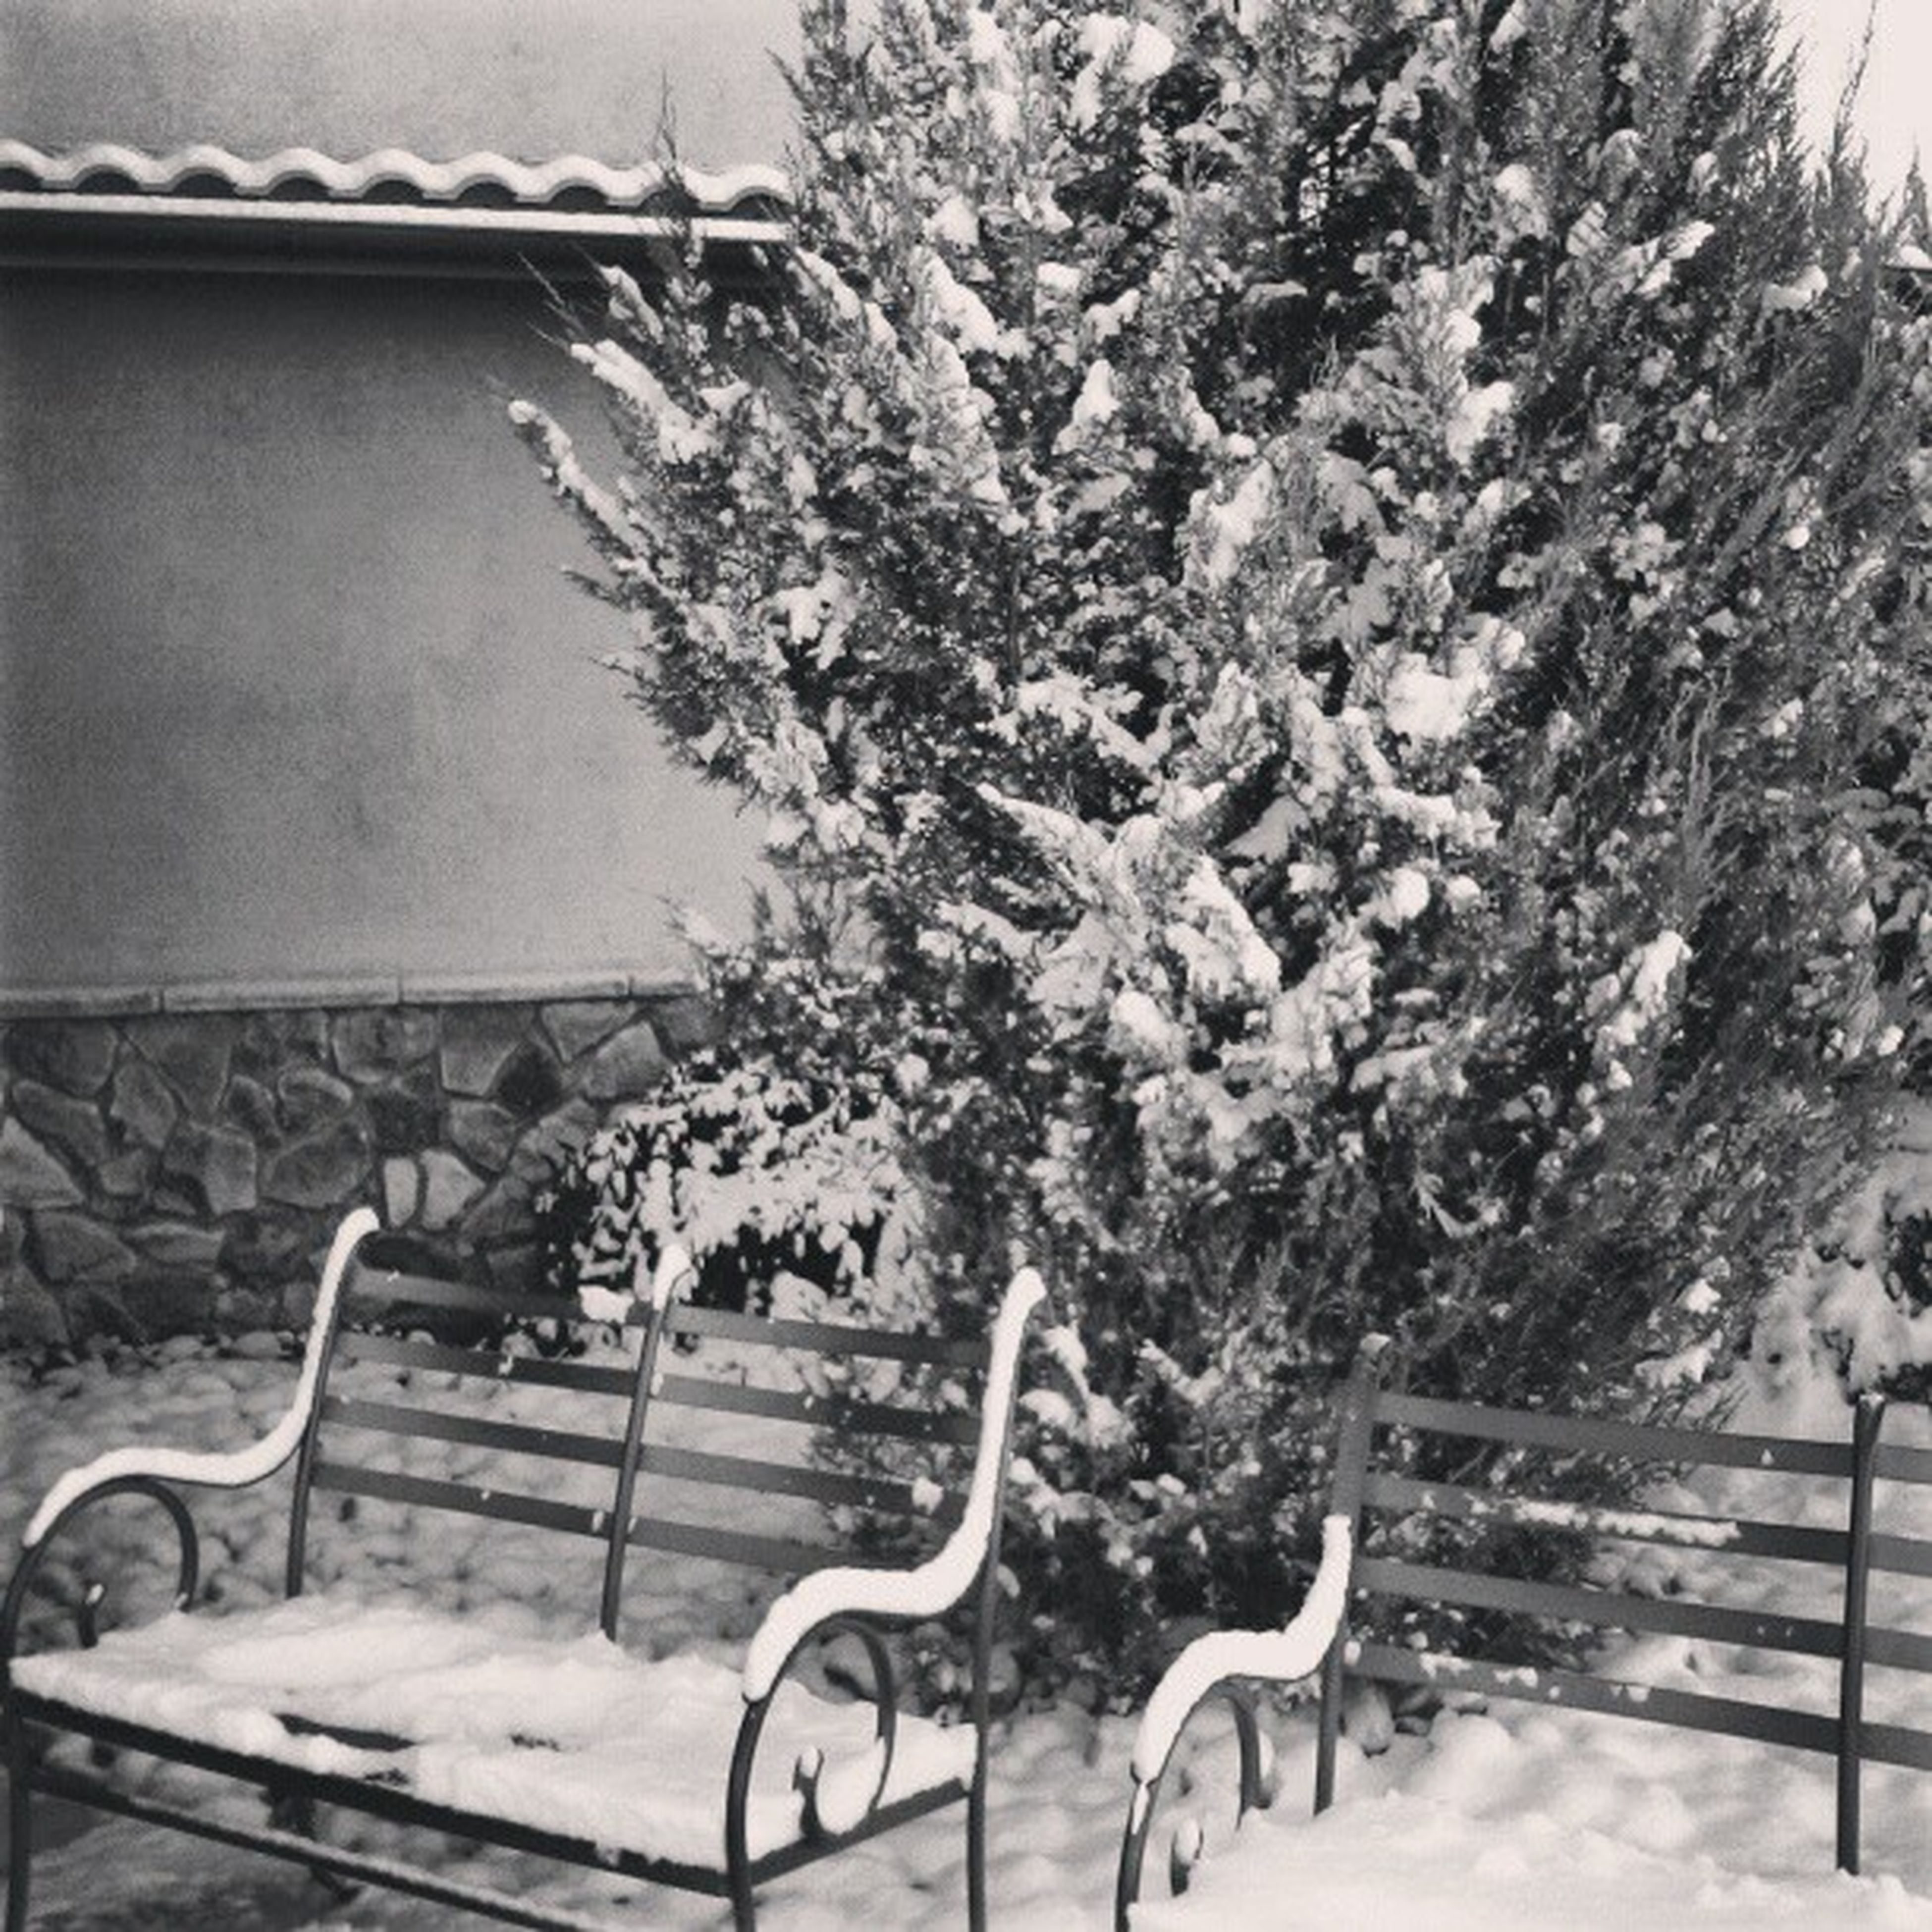 snow, winter, cold temperature, tree, season, nature, growth, covering, weather, white color, built structure, branch, beauty in nature, fence, tranquility, house, plant, building exterior, outdoors, bench